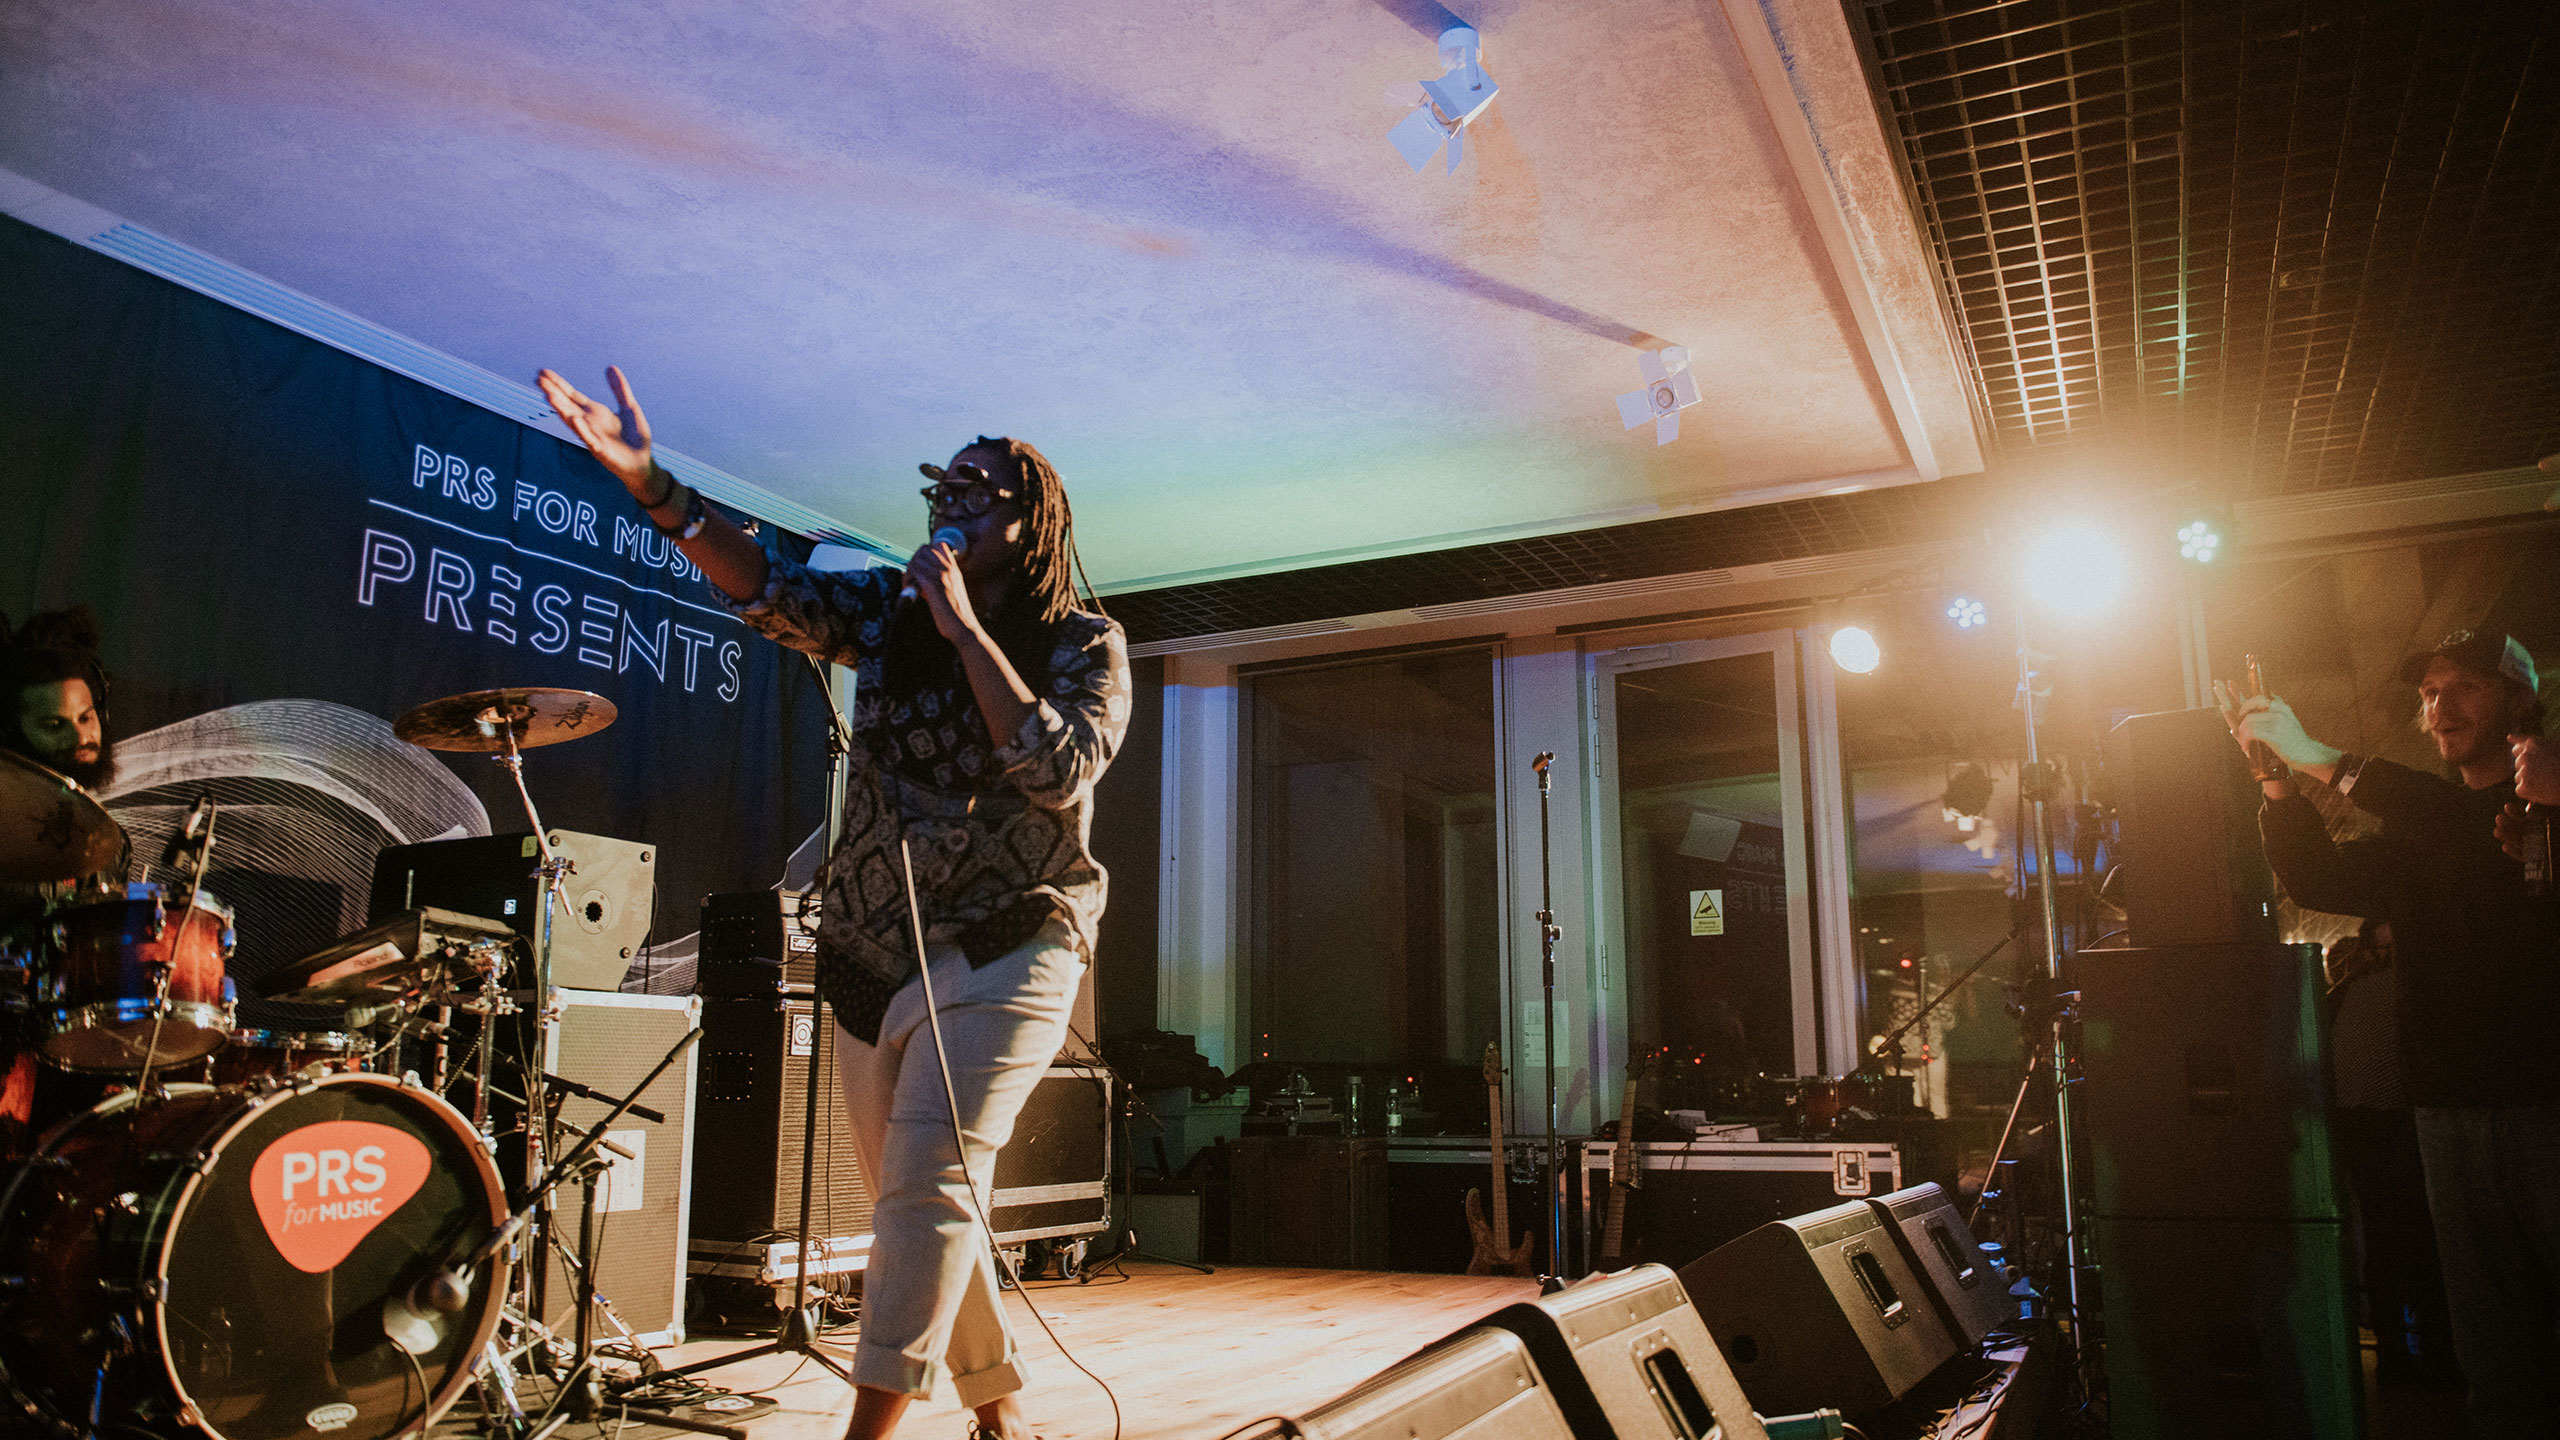 Speech Debelle walks across the stage with her arm outstretched at PRS for Music Presents